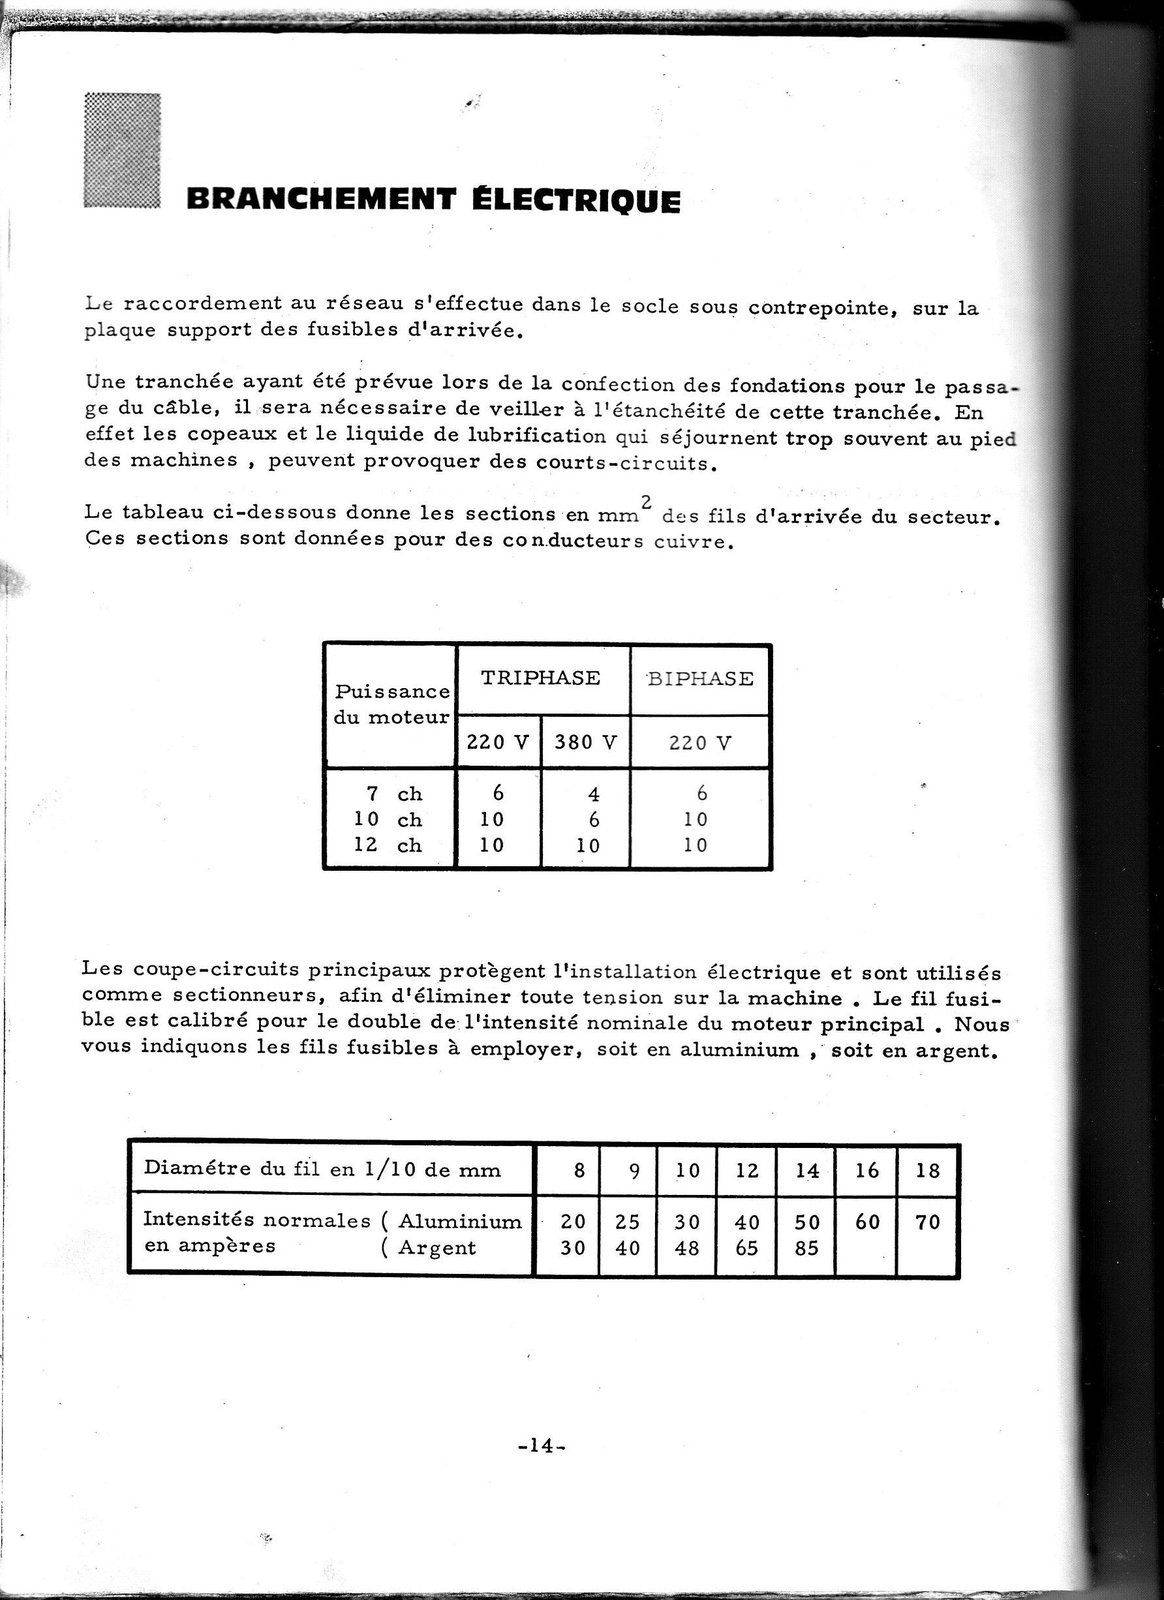 PAGE 14.jpg